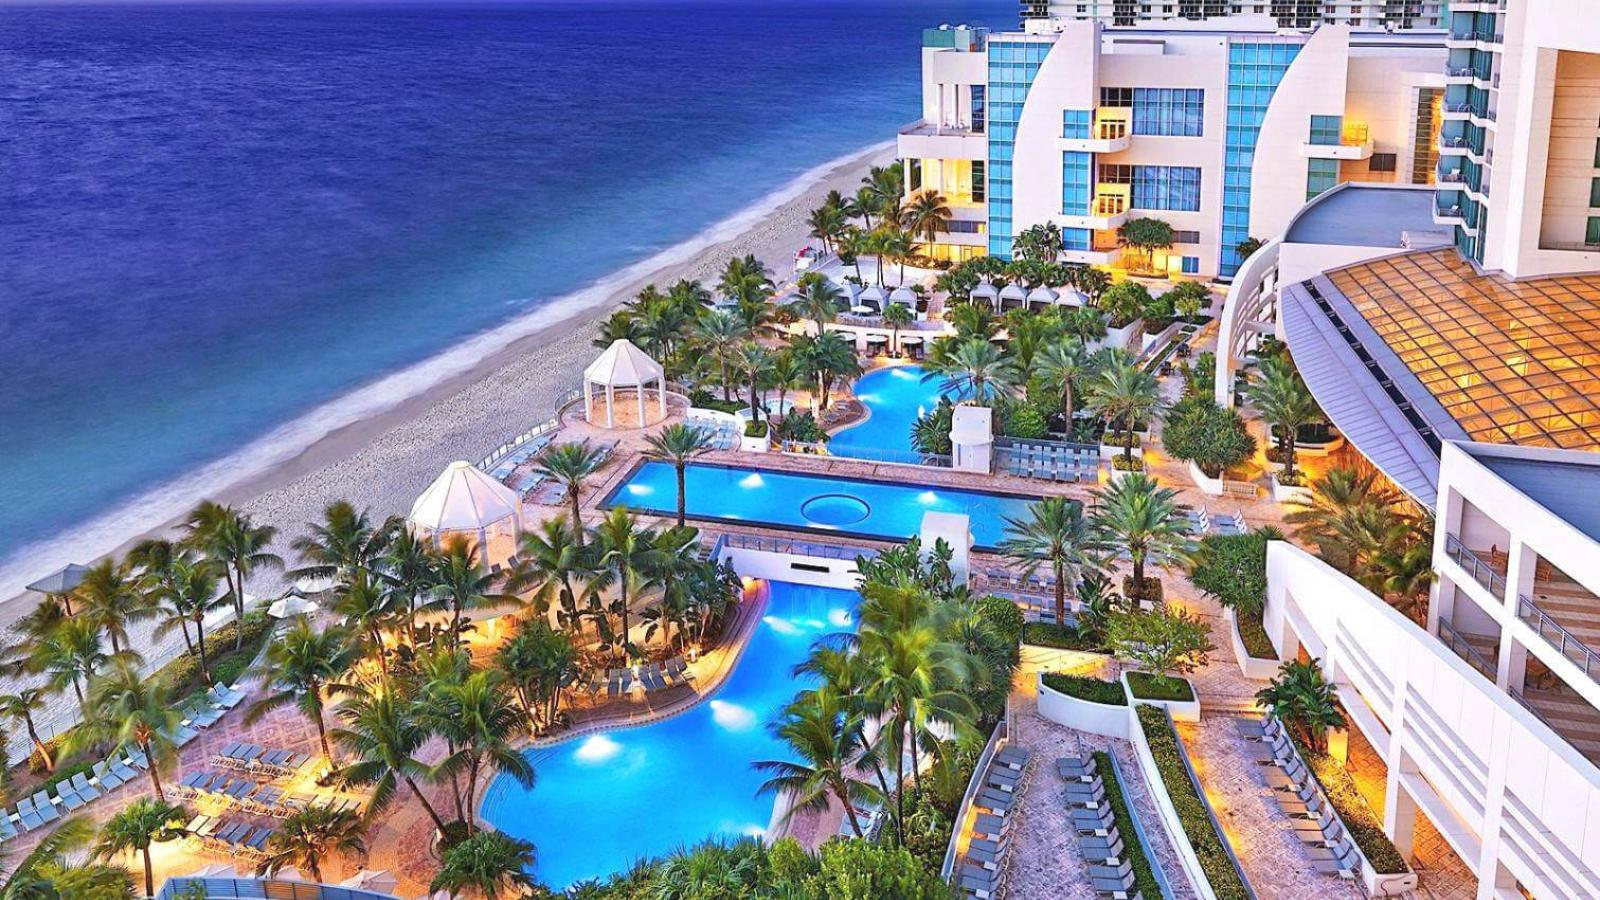 Beach and series of swimming pools at Florida resort hotel